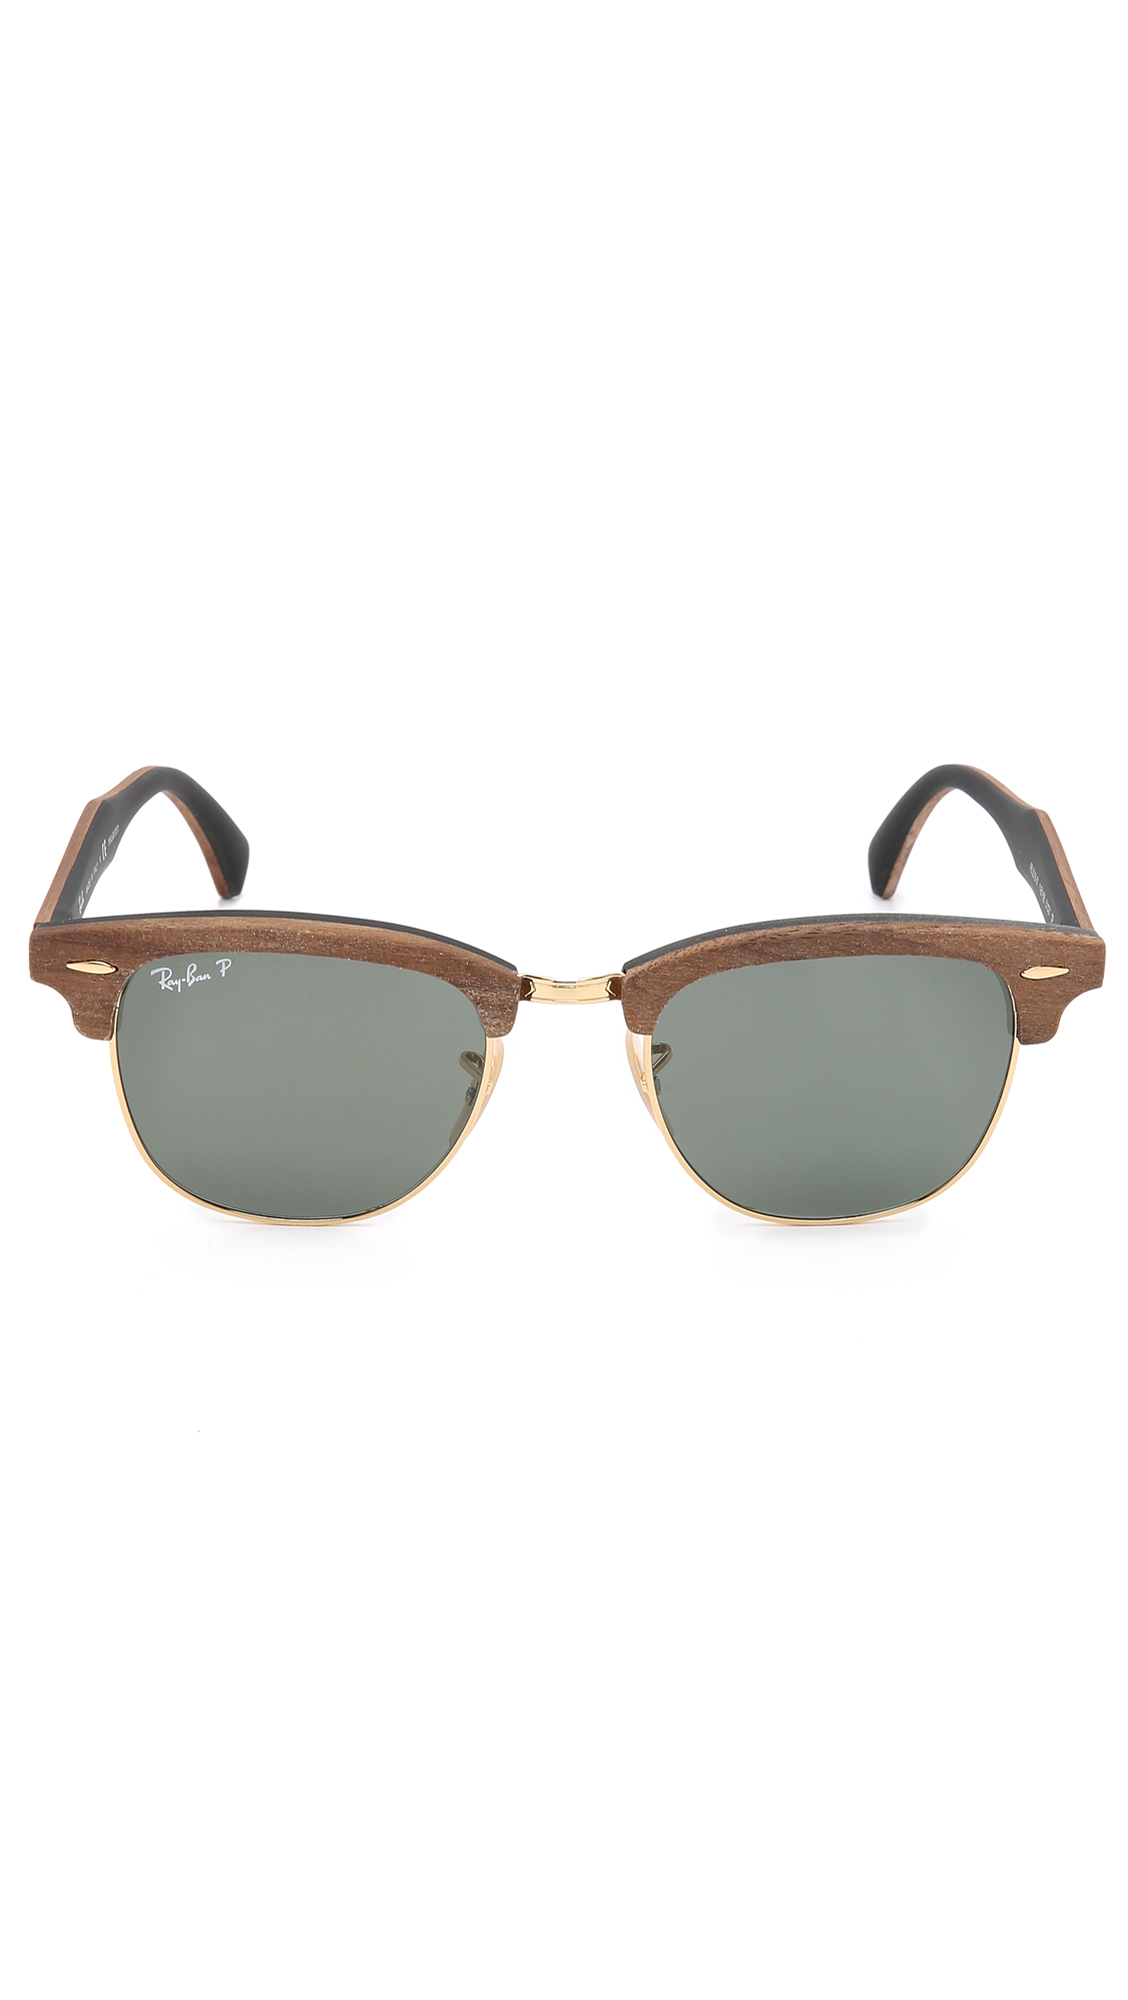 2019 buy cheap ray ban sunglasses online india online 2019